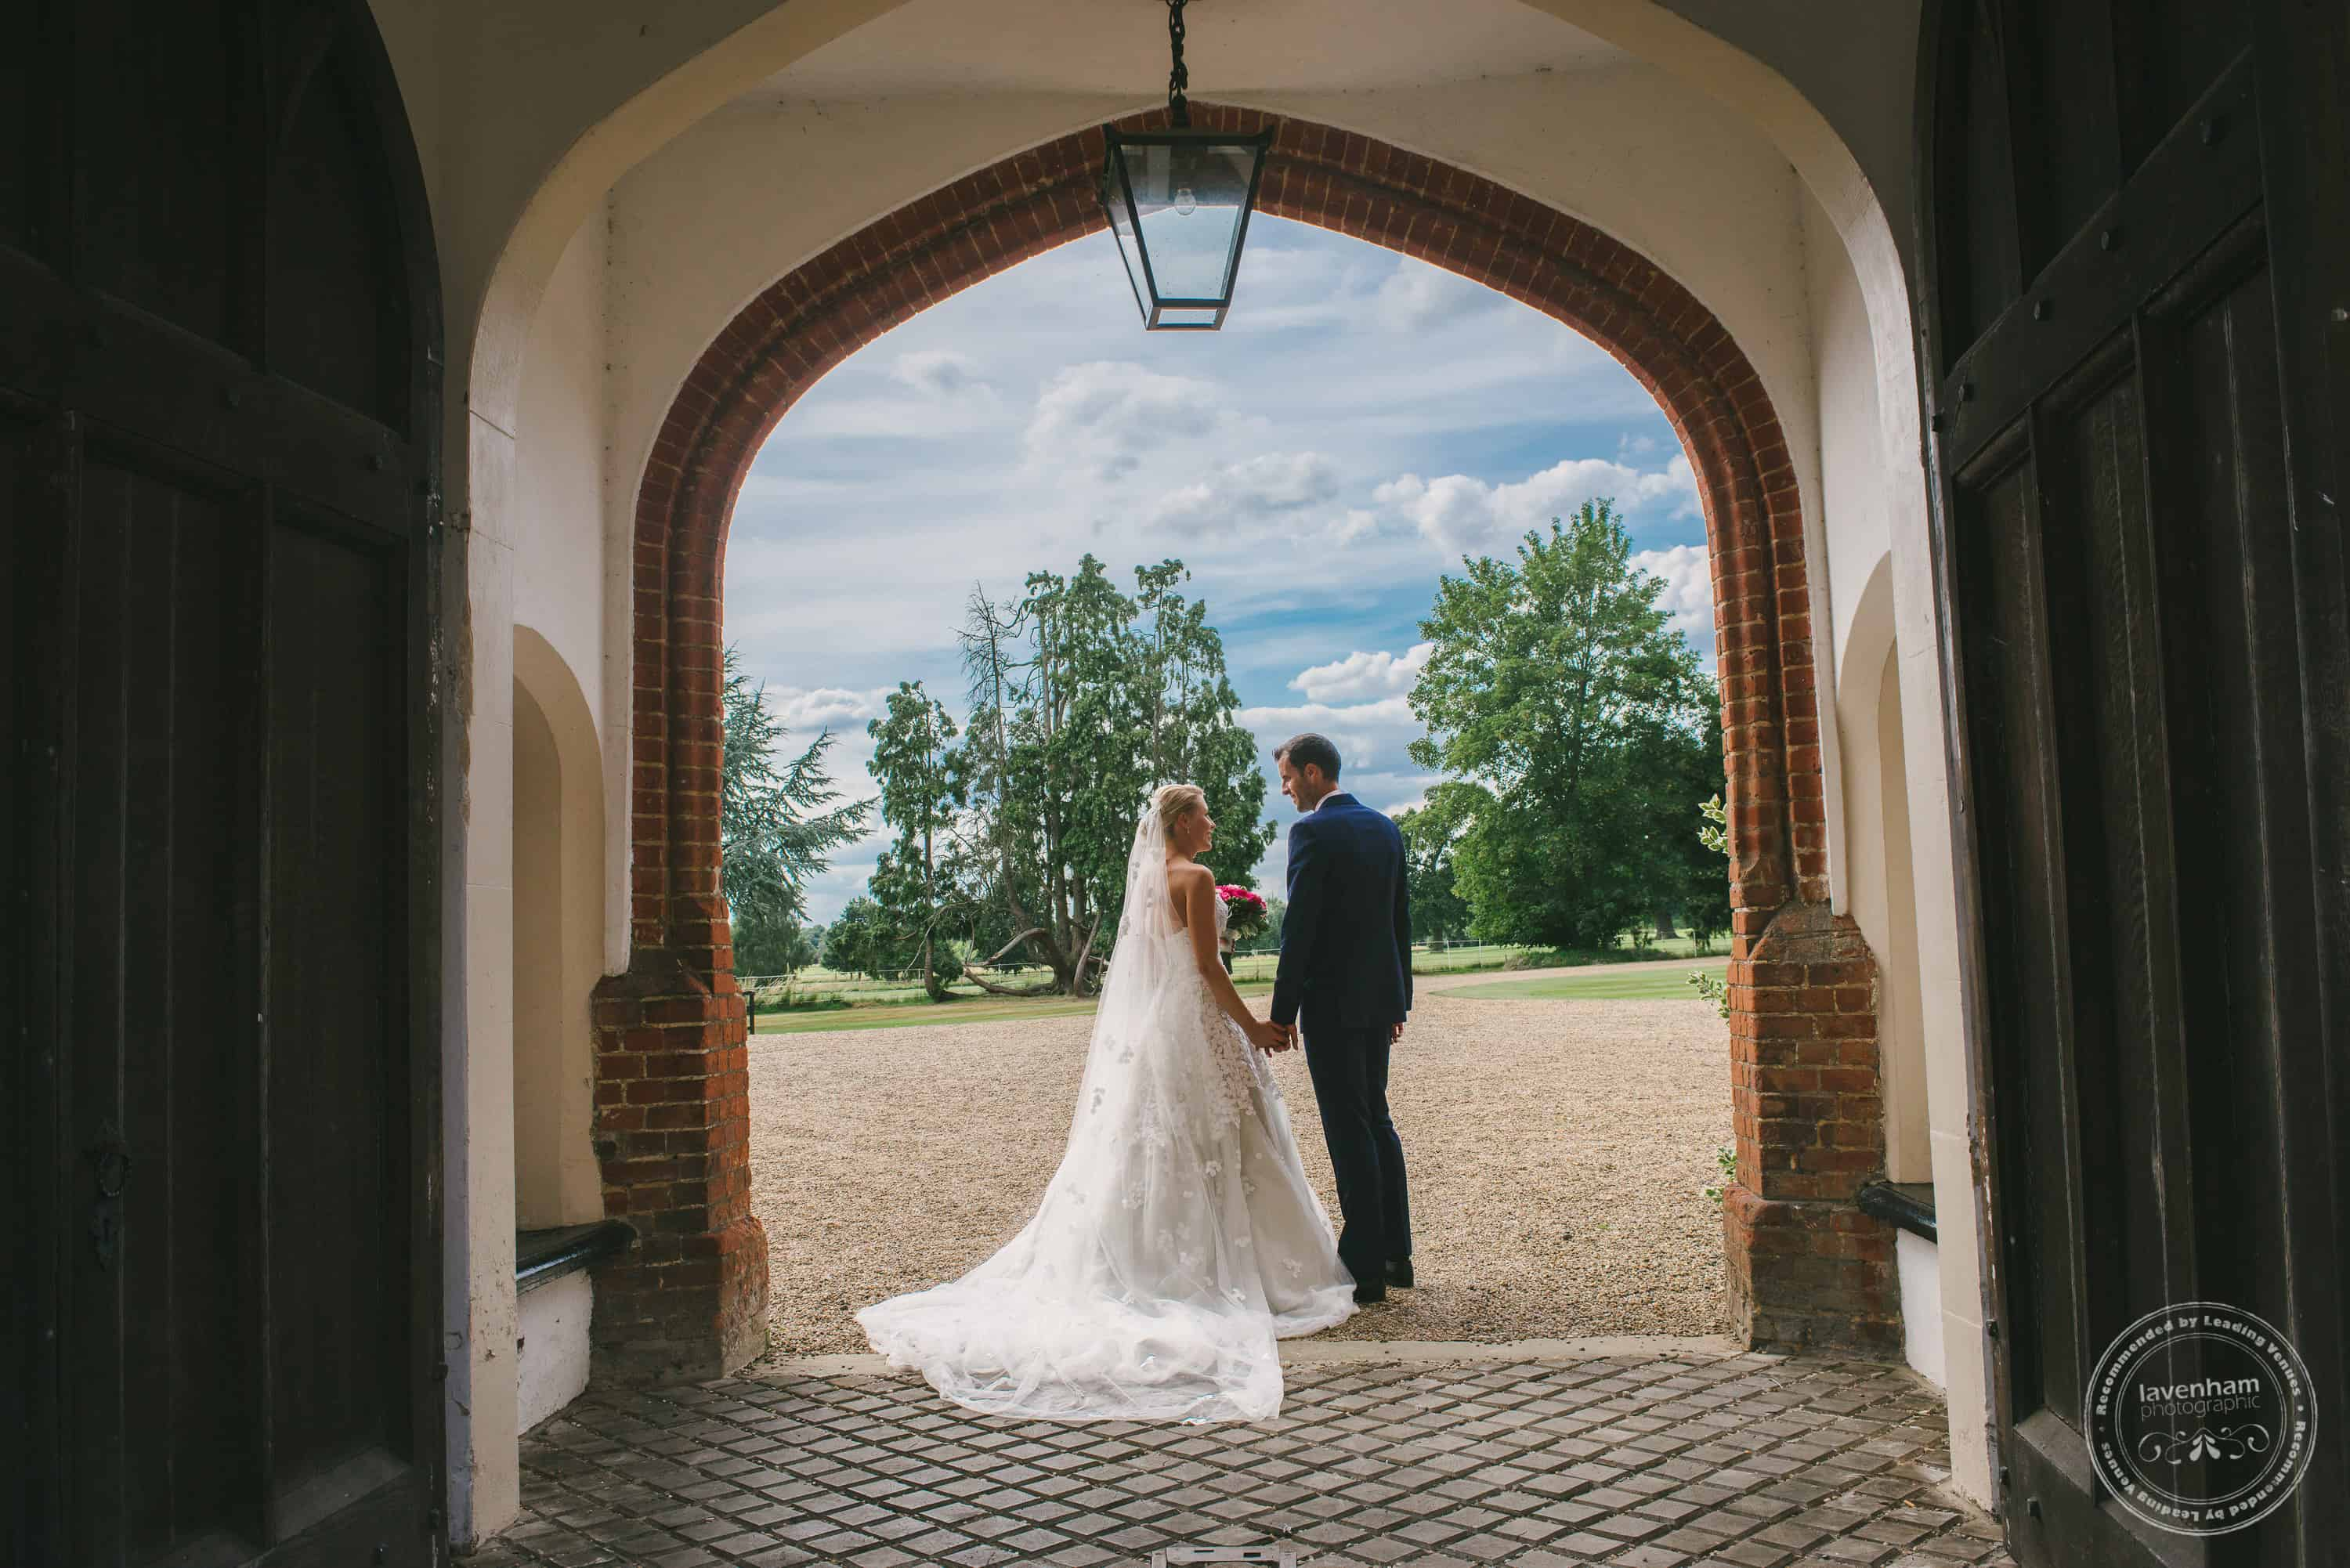 Blue sky framed by archway with bride and groom having a quiet moment